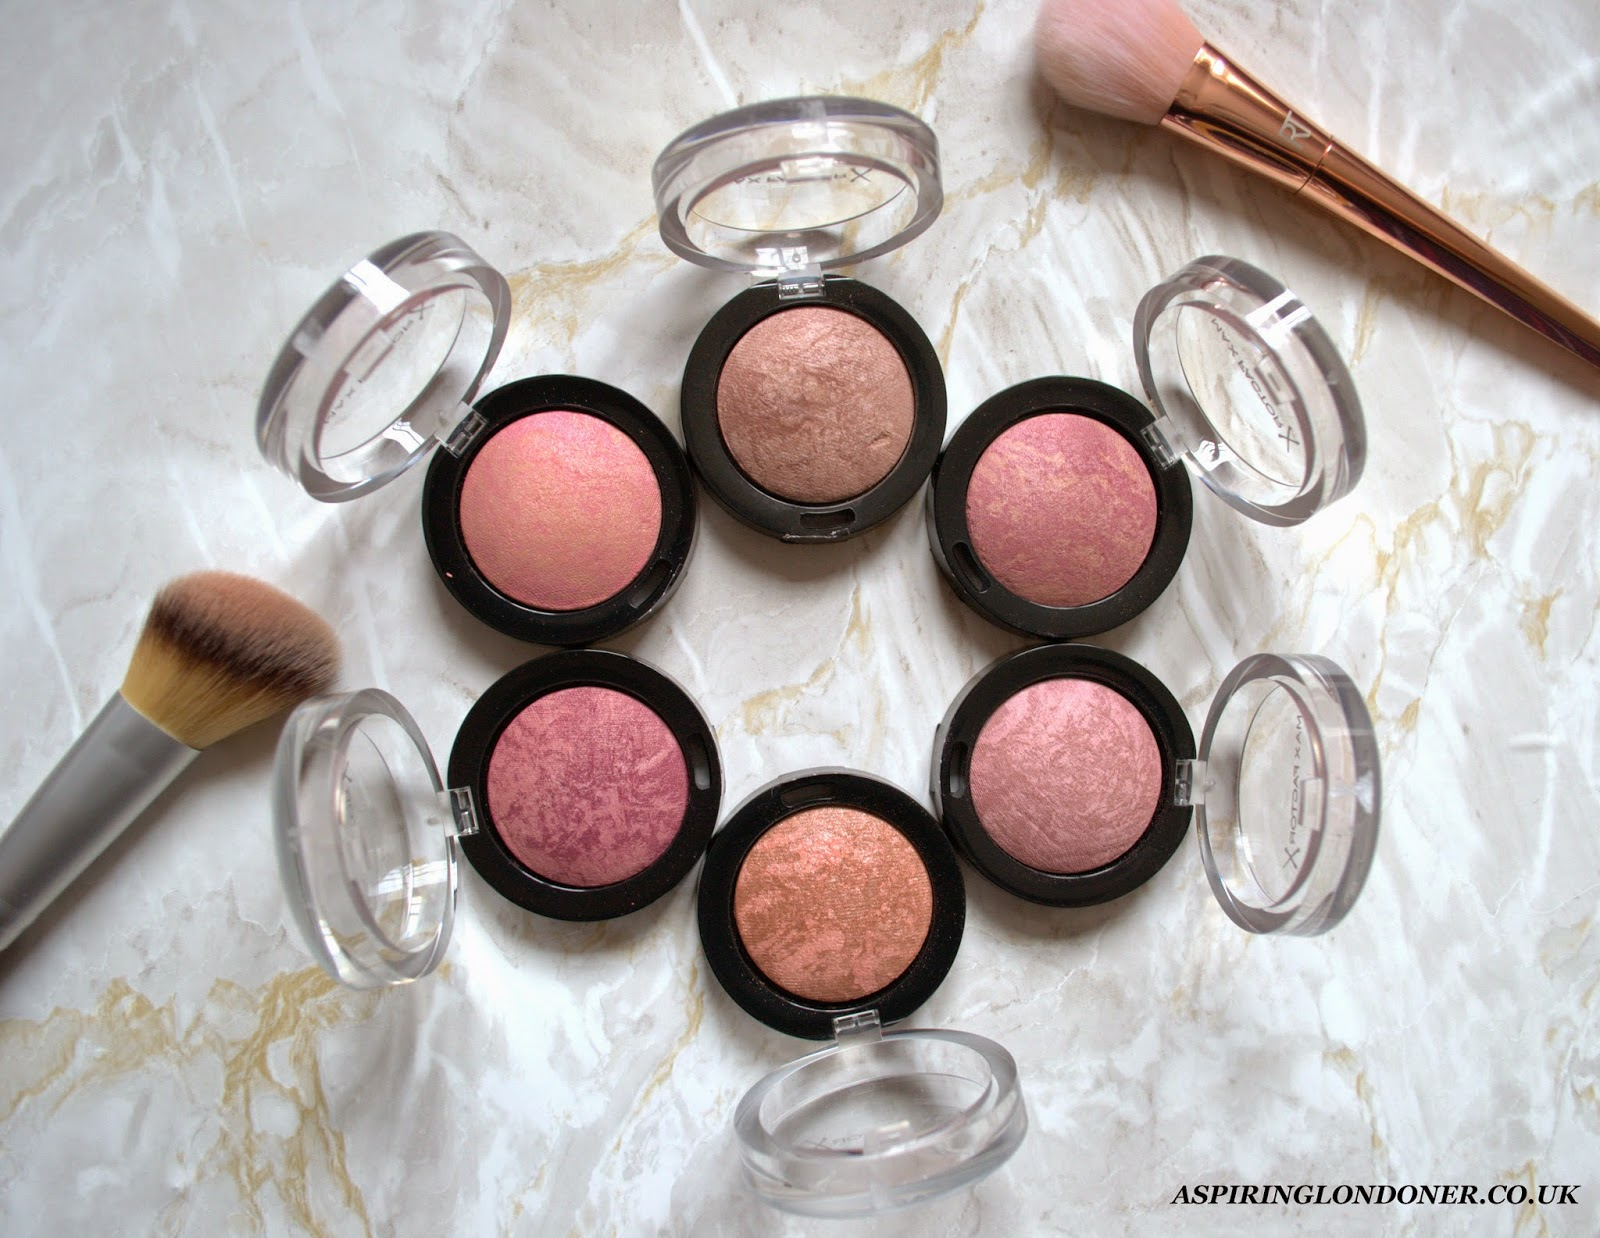 Max Factor Creme Puff Blush Review+Swatch - Aspiring Londoner